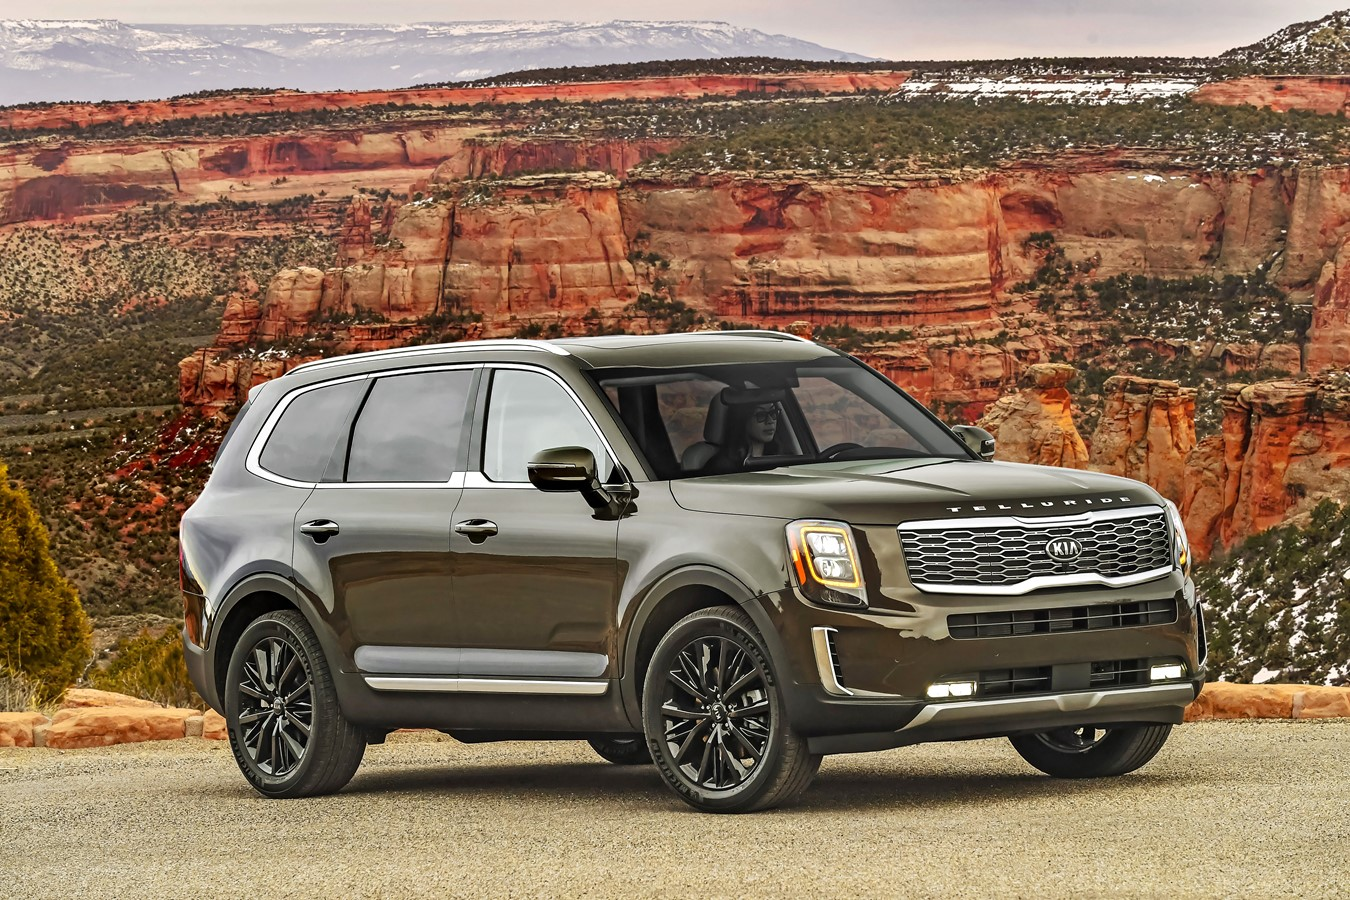 2020 Kia Telluride Named On Car And Driver 10best Trucks And Suvs List